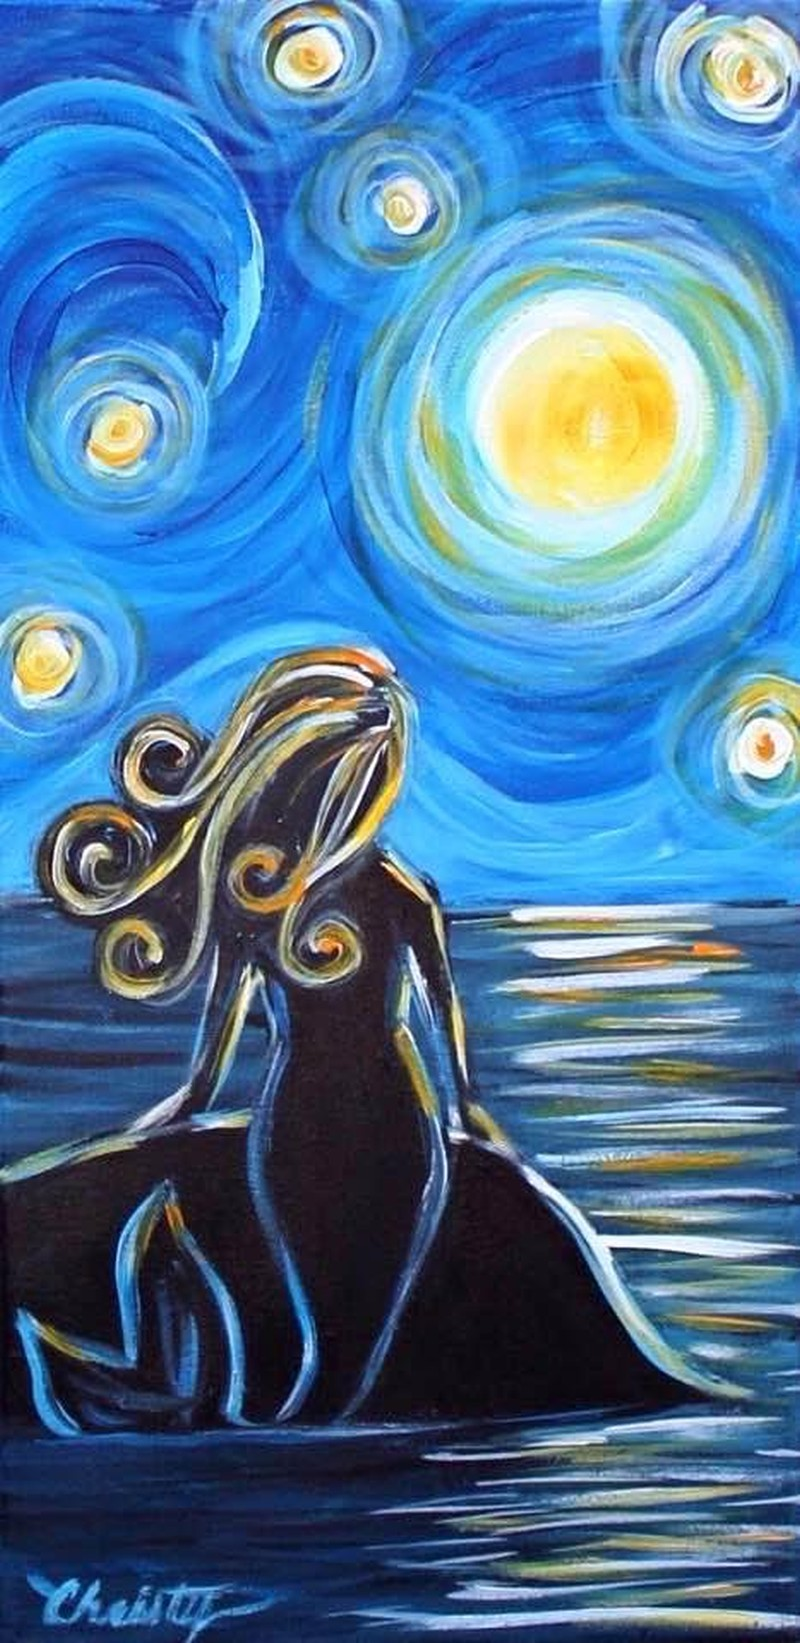 Starry Night Mermaid- TAKE HOME PAINT KIT - - ORDER TODAY! CURB SIDE PICK UP TOMORROW 2PM-5PM!